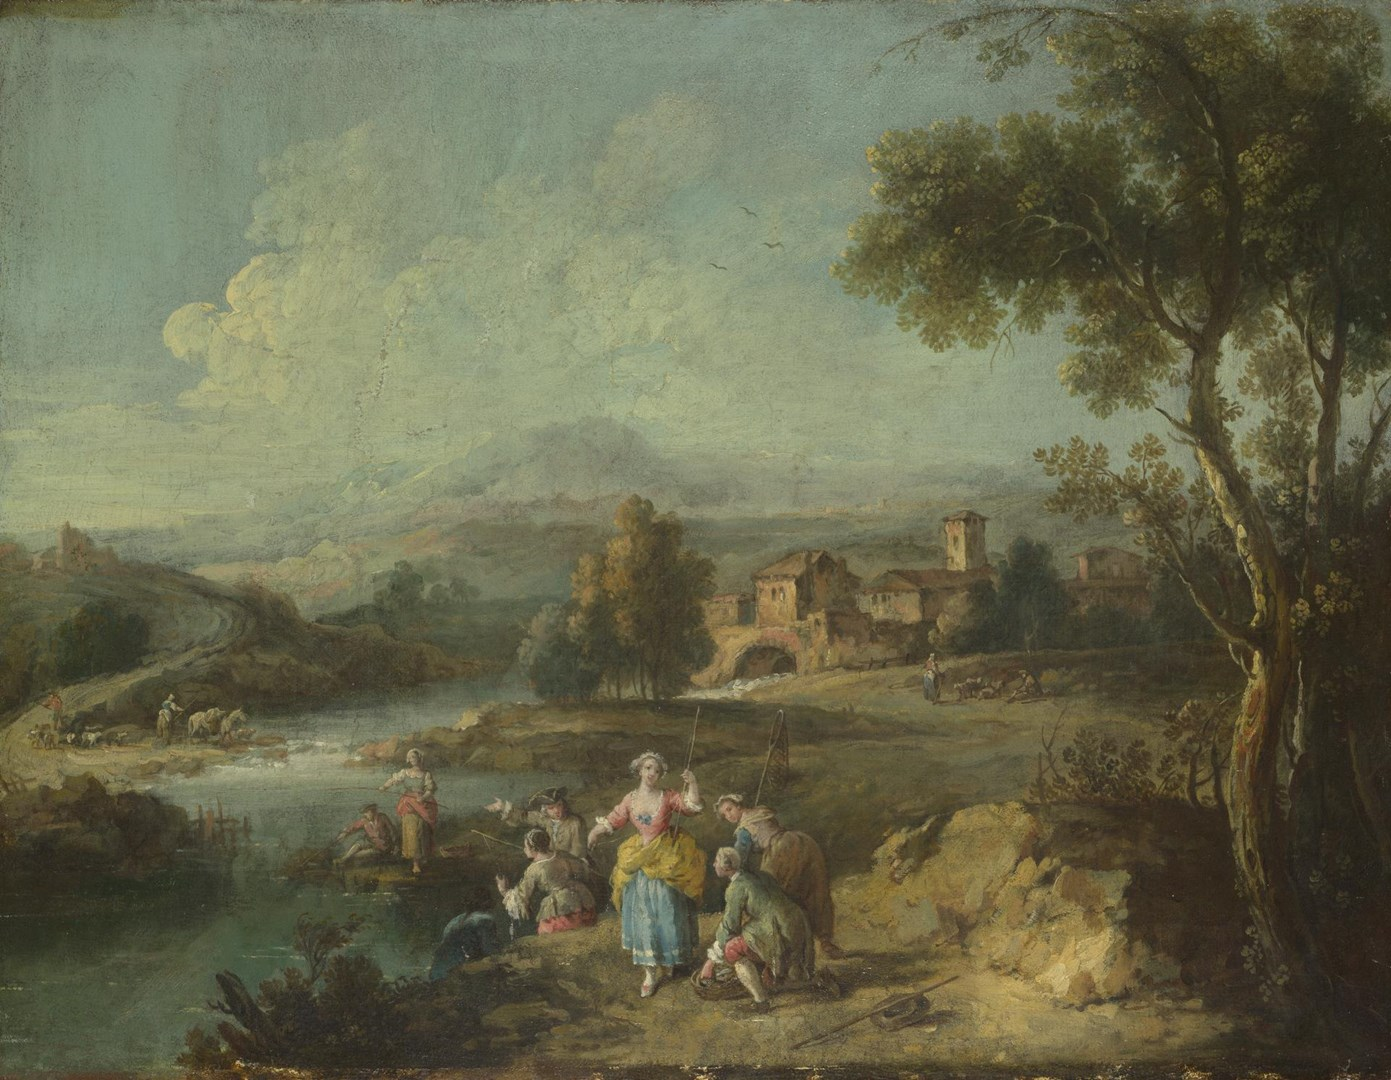 Landscape with a Group of Figures Fishing by Giuseppe Zais